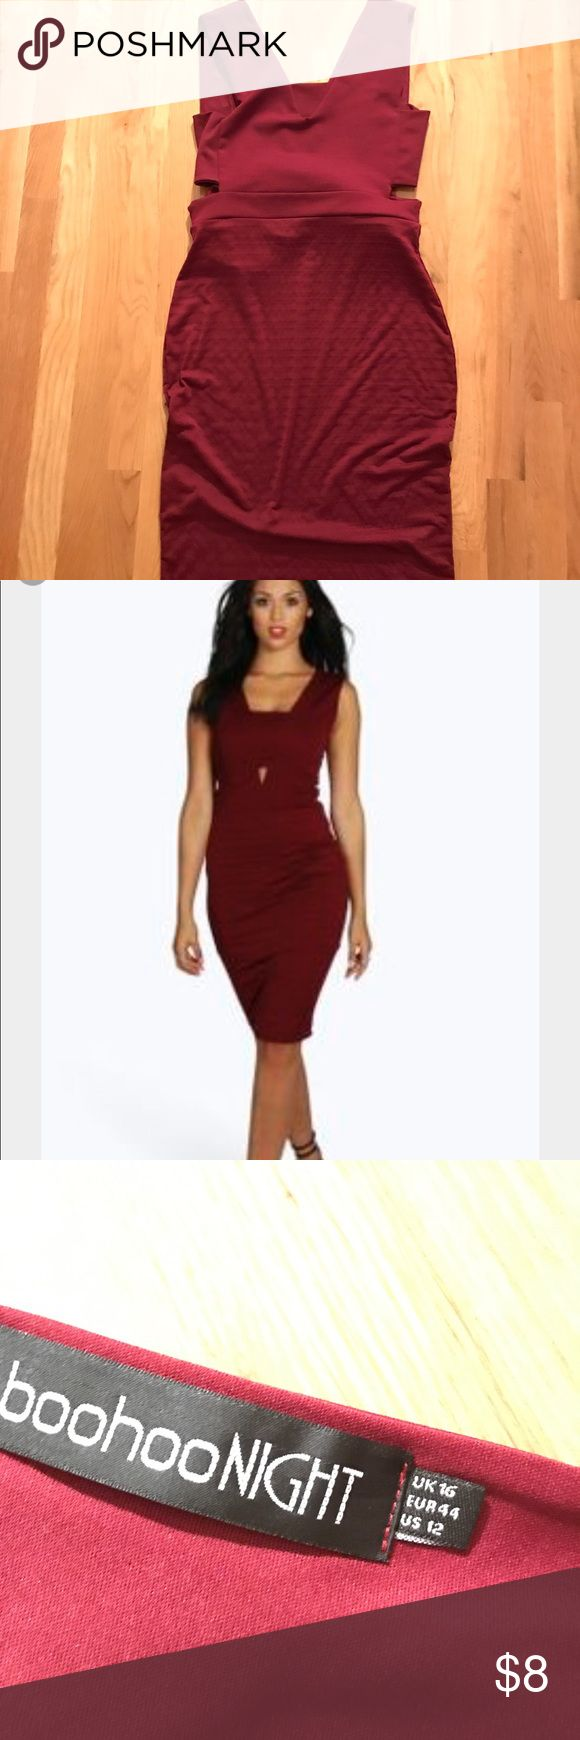 Boohoo Veronica Cut Out Contrast Midi size 16 Boohoo Veronica Cut Out Contrast Midi Burgundy   Color: Burgundy  Size: 16  Great for a night out Very stretchy  Fits curves nicely Worn once  Fits more like a size 12/14 Boohoo Dresses Midi